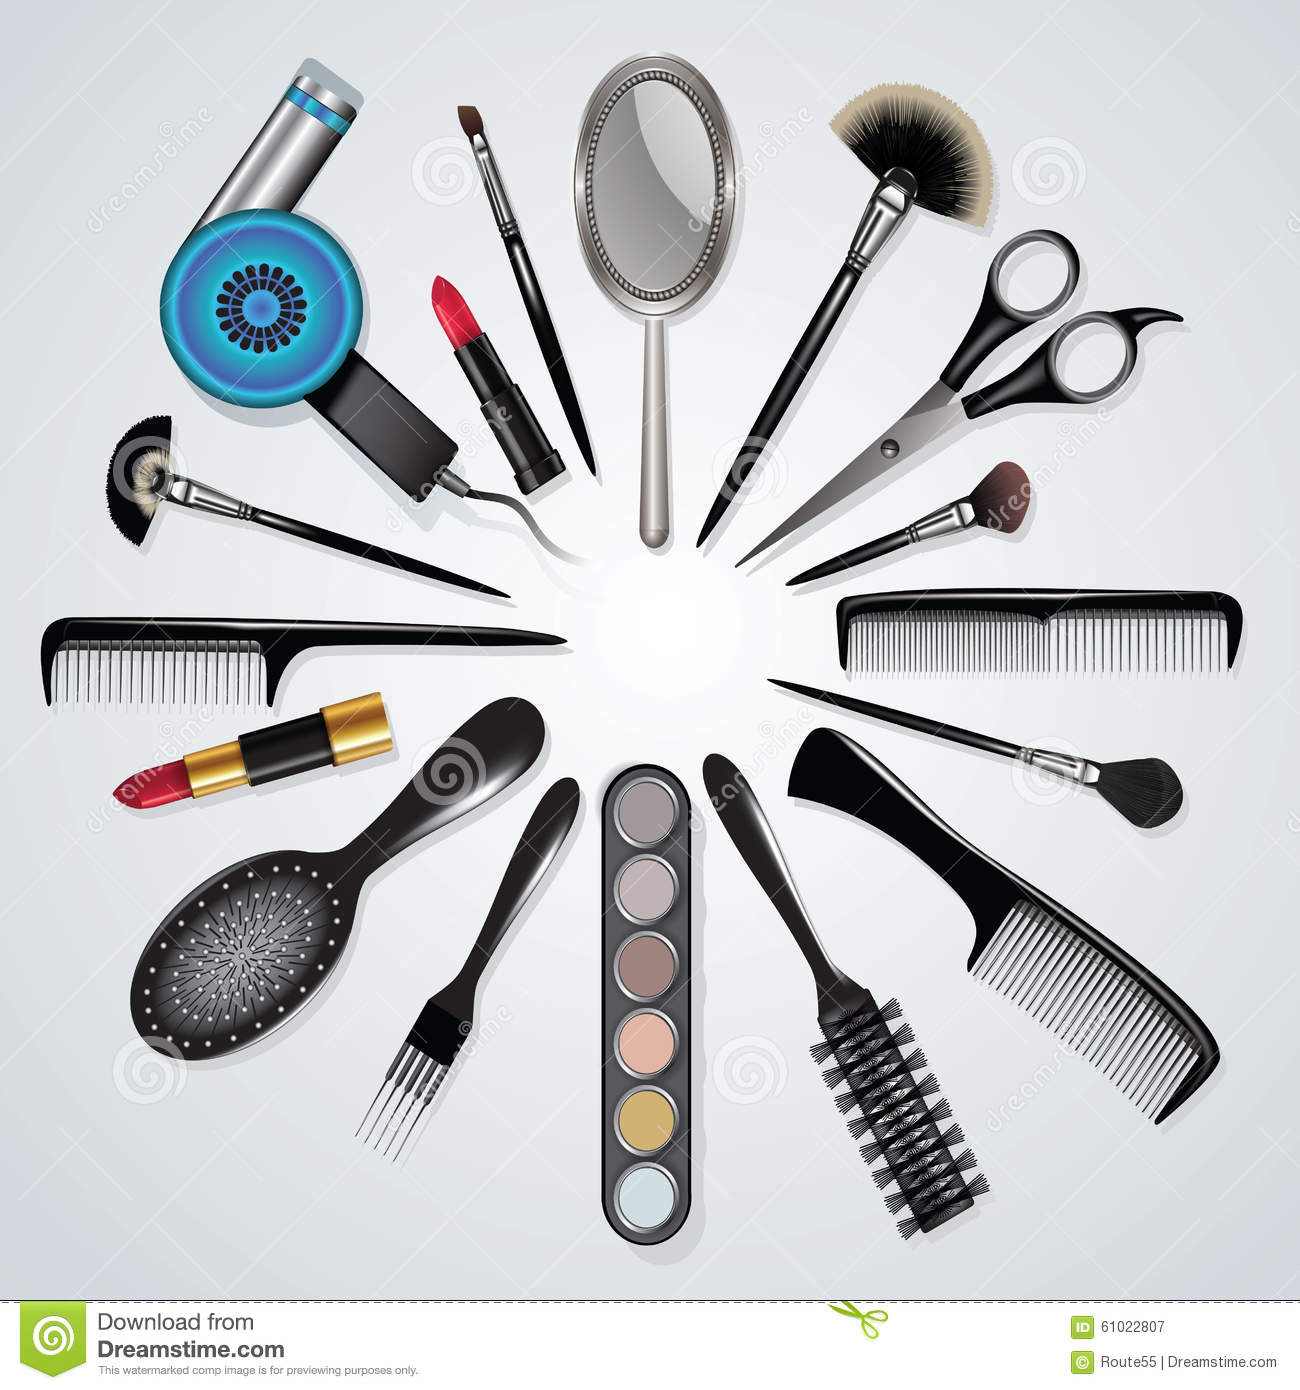 Hair Stylist And Makeup Tools Stock Vector - Illustration Of Cutter Glamor 61022807